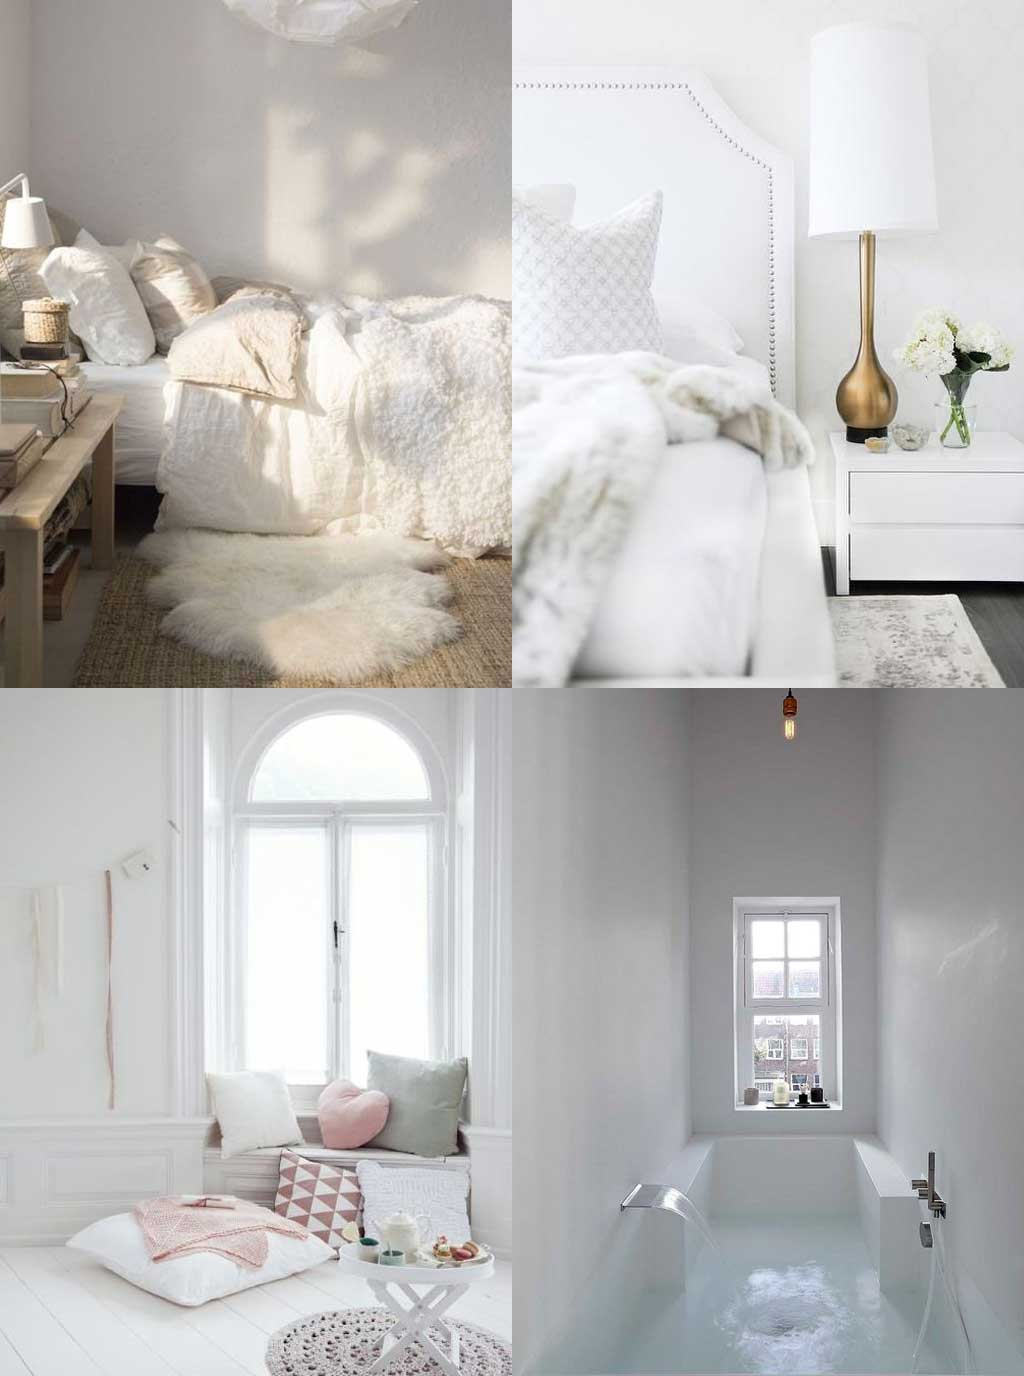 Colour Psychology in Interior Design - White Rooms - Hutsly Blog